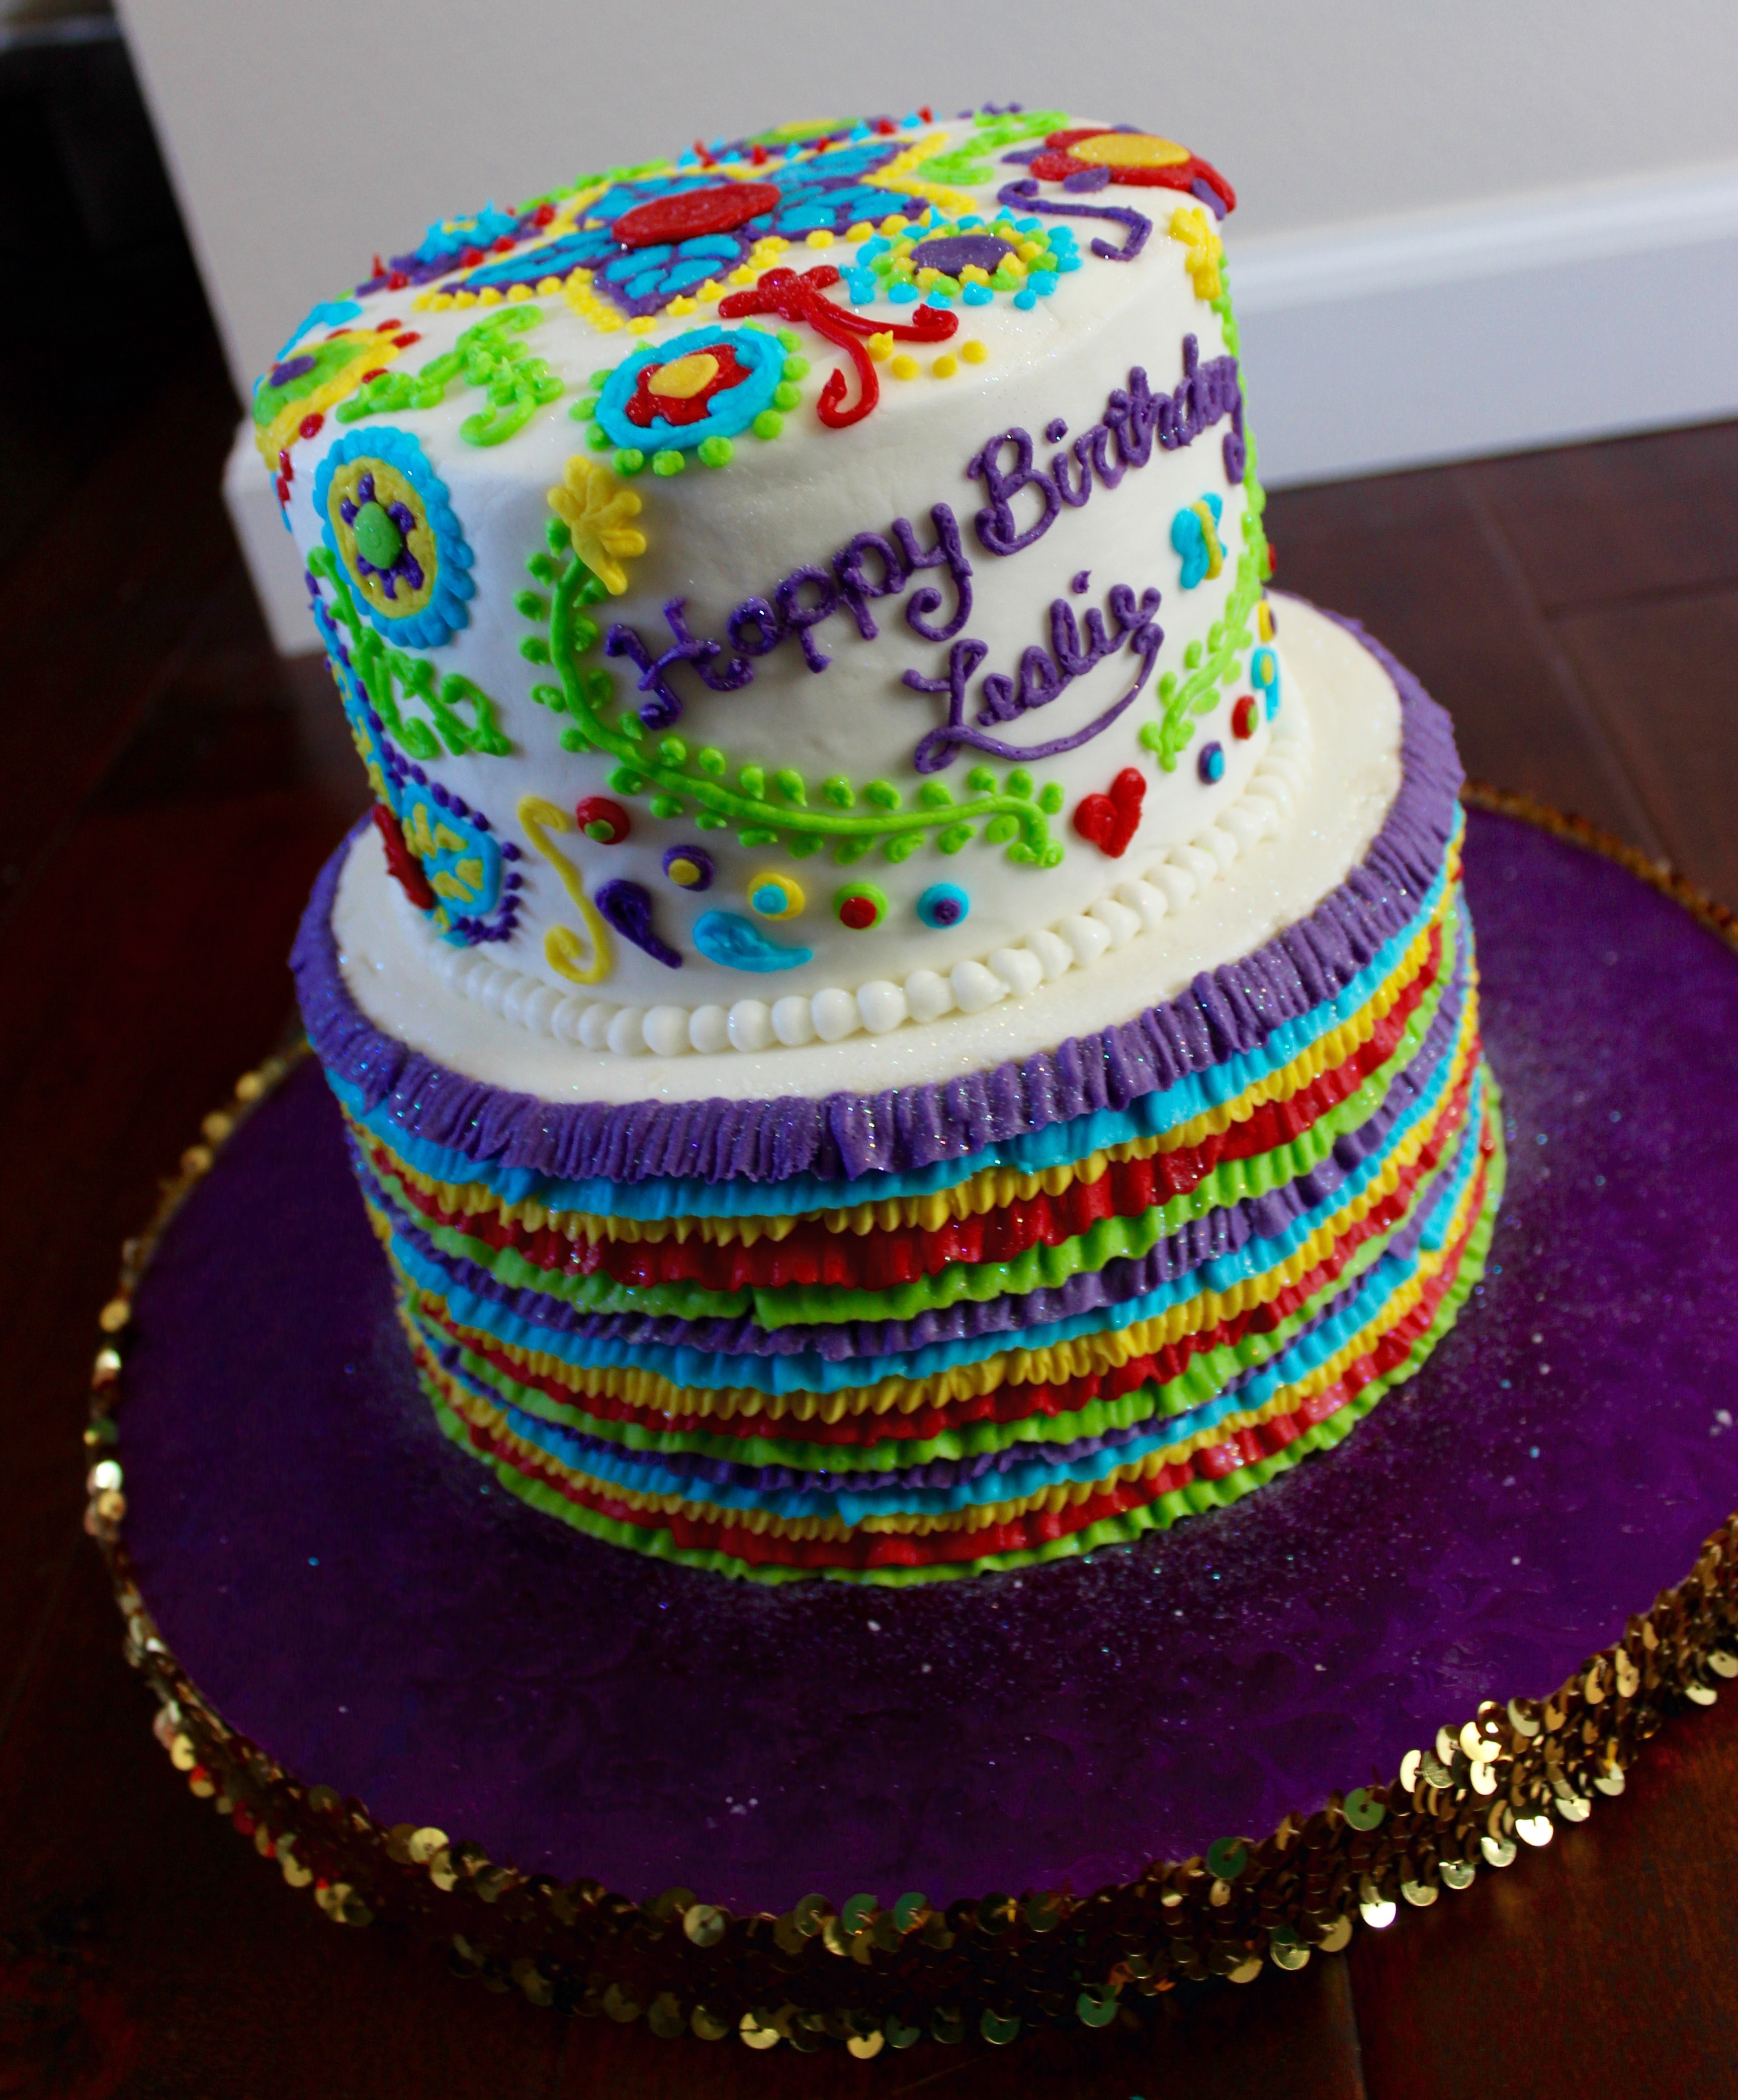 birthday cake ka photo ; 900_54FznxG6kA-fiesta-inspired-birthday-cake